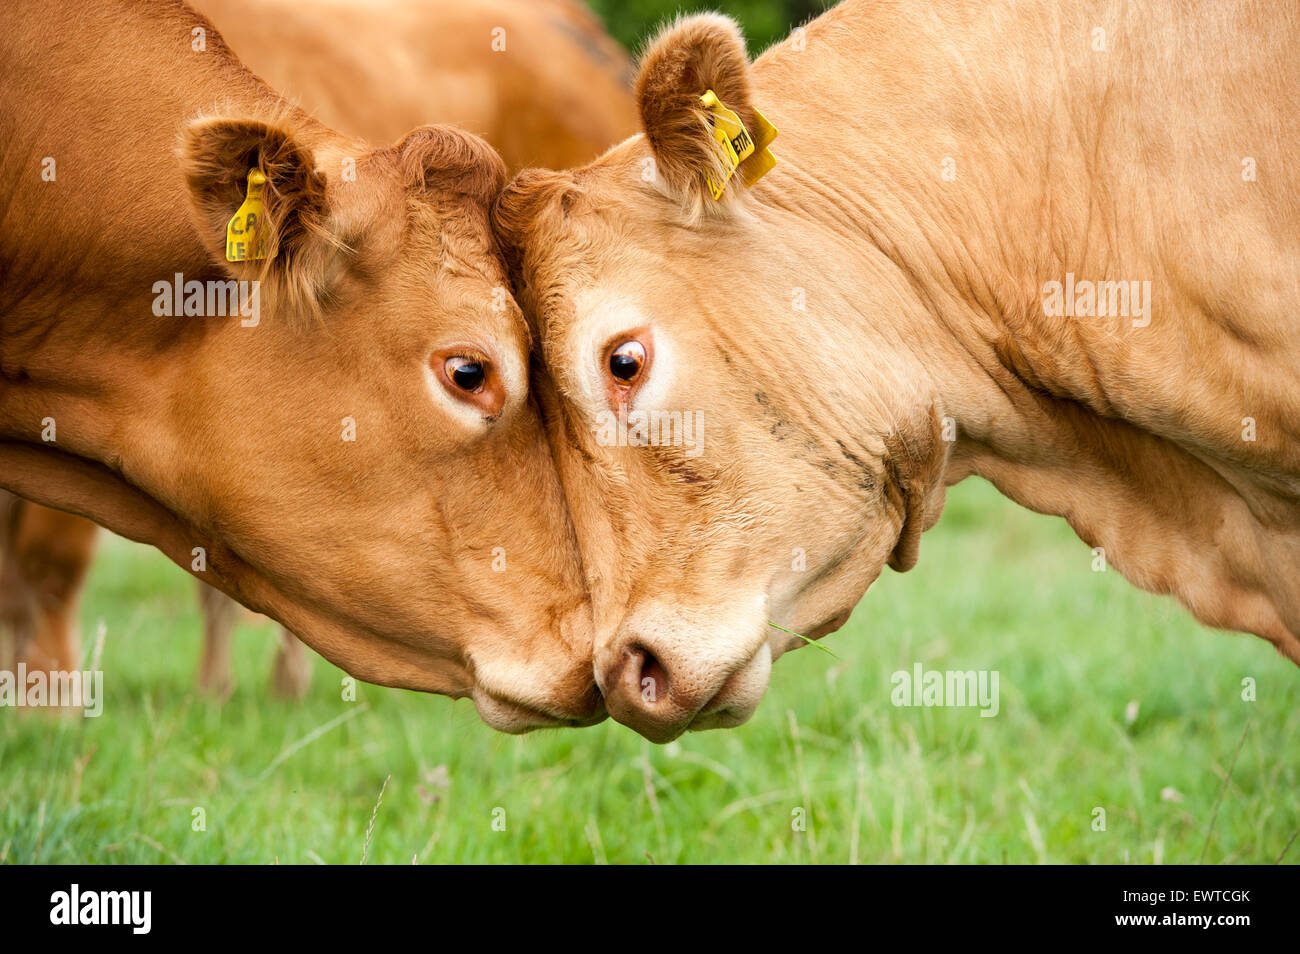 Two limousin cows fighting each other, pushing head to head. Lancashire, UK. - Stock Image